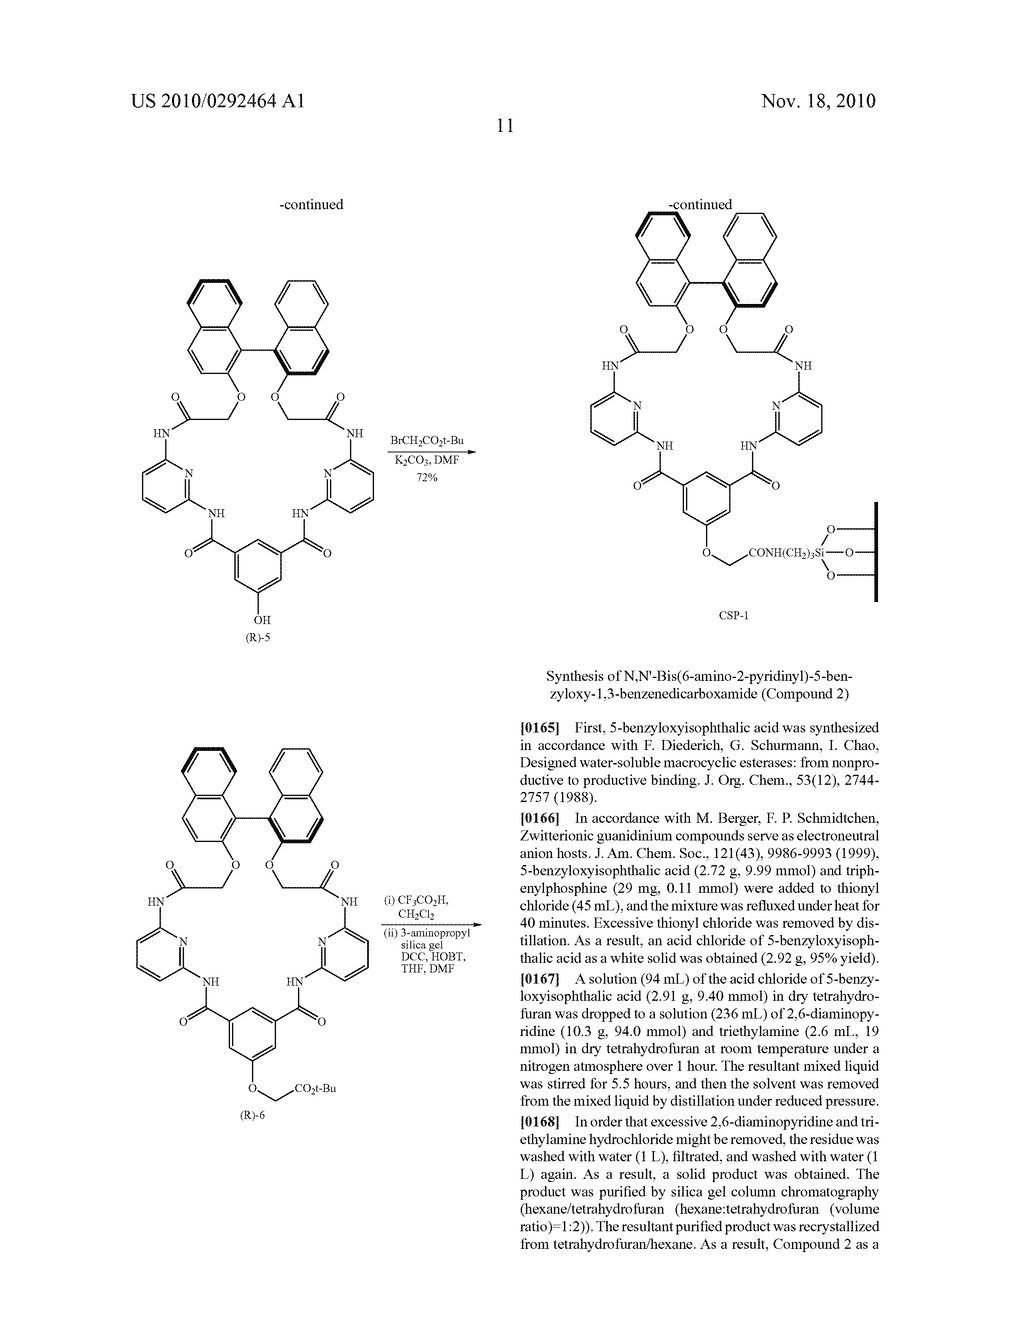 OPTICAL-ISOMER SEPARATING AGENT FOR CHROMATOGRAPHY AND PROCESS FOR PRODUCING THE SAME - diagram, schematic, and image 55